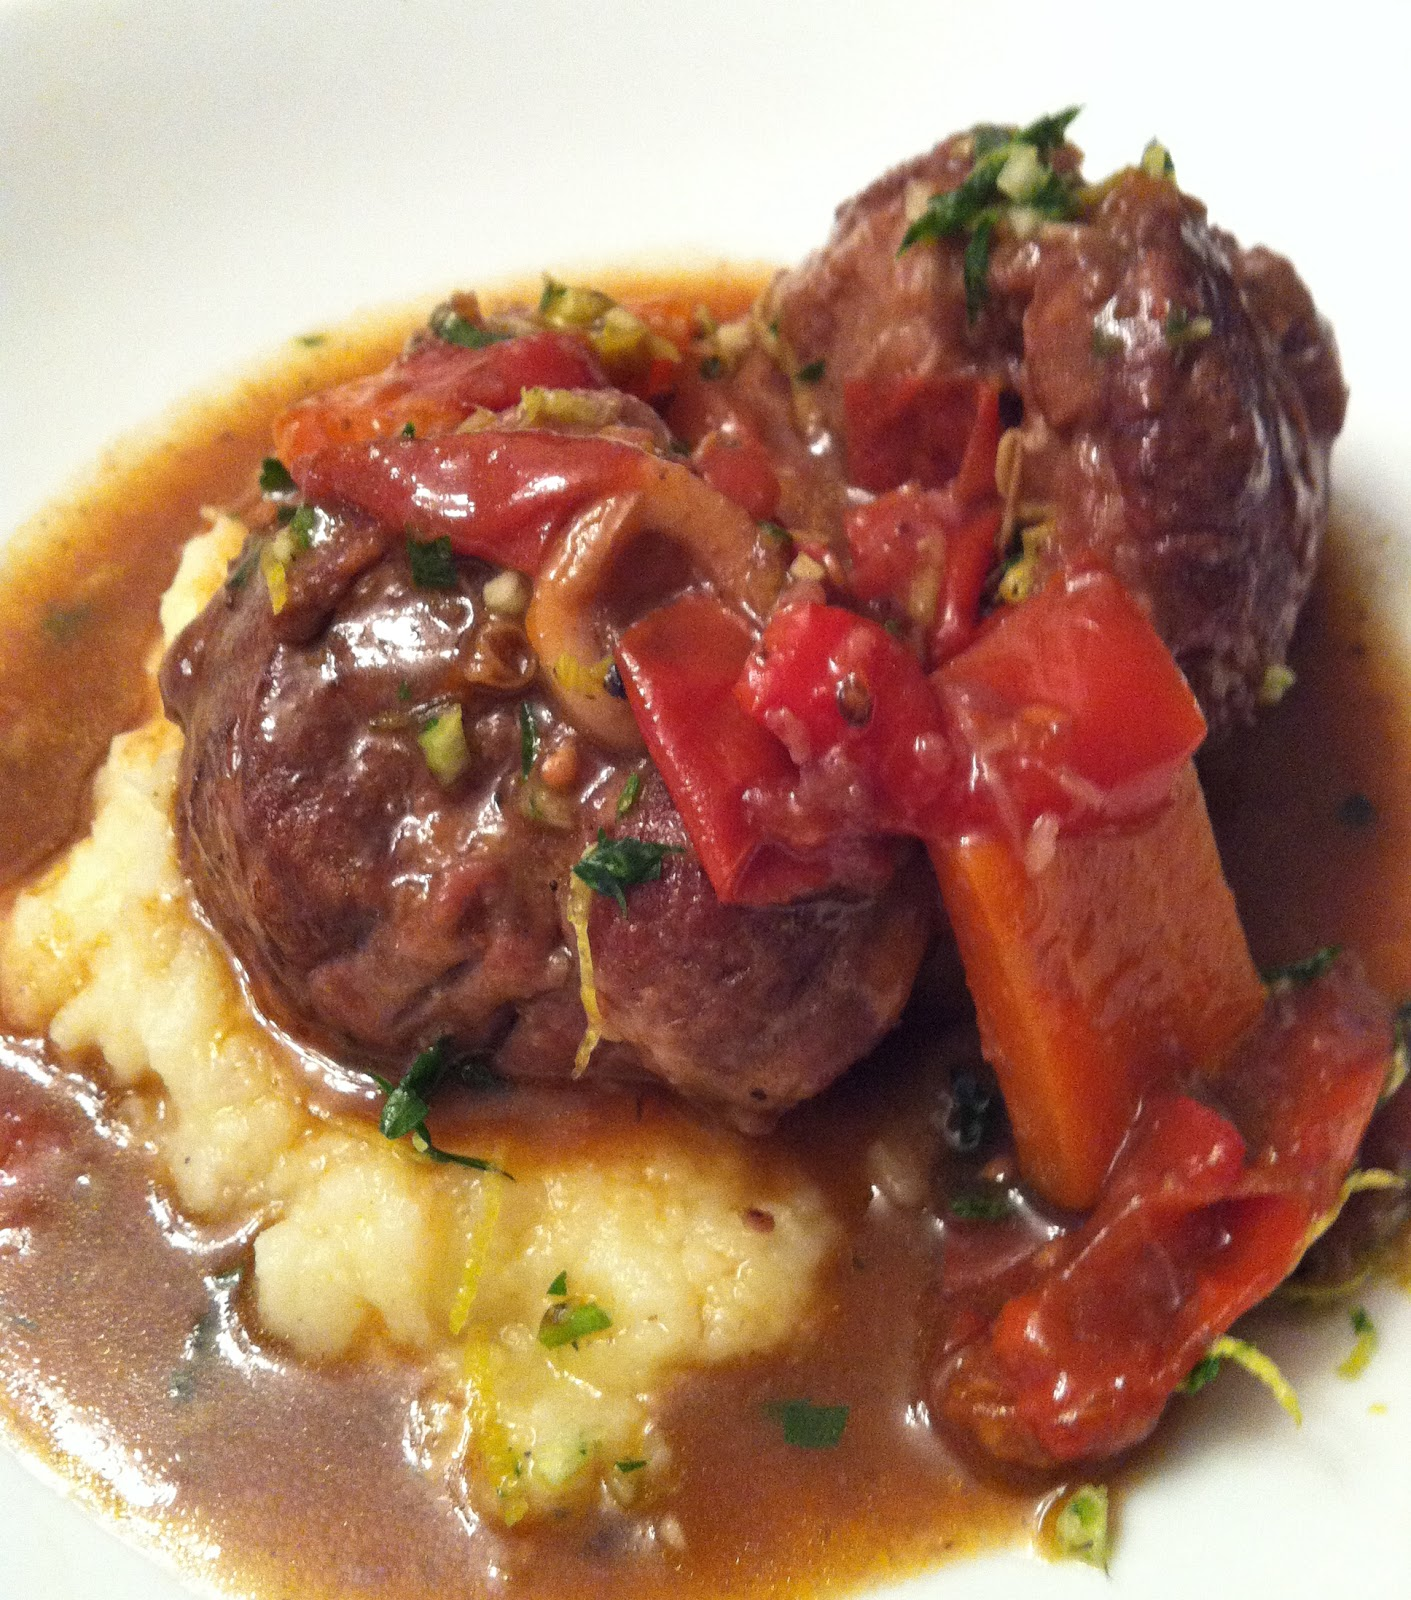 gastronomic nomad: Father's Day Veal Osso Bucco with Gremolata